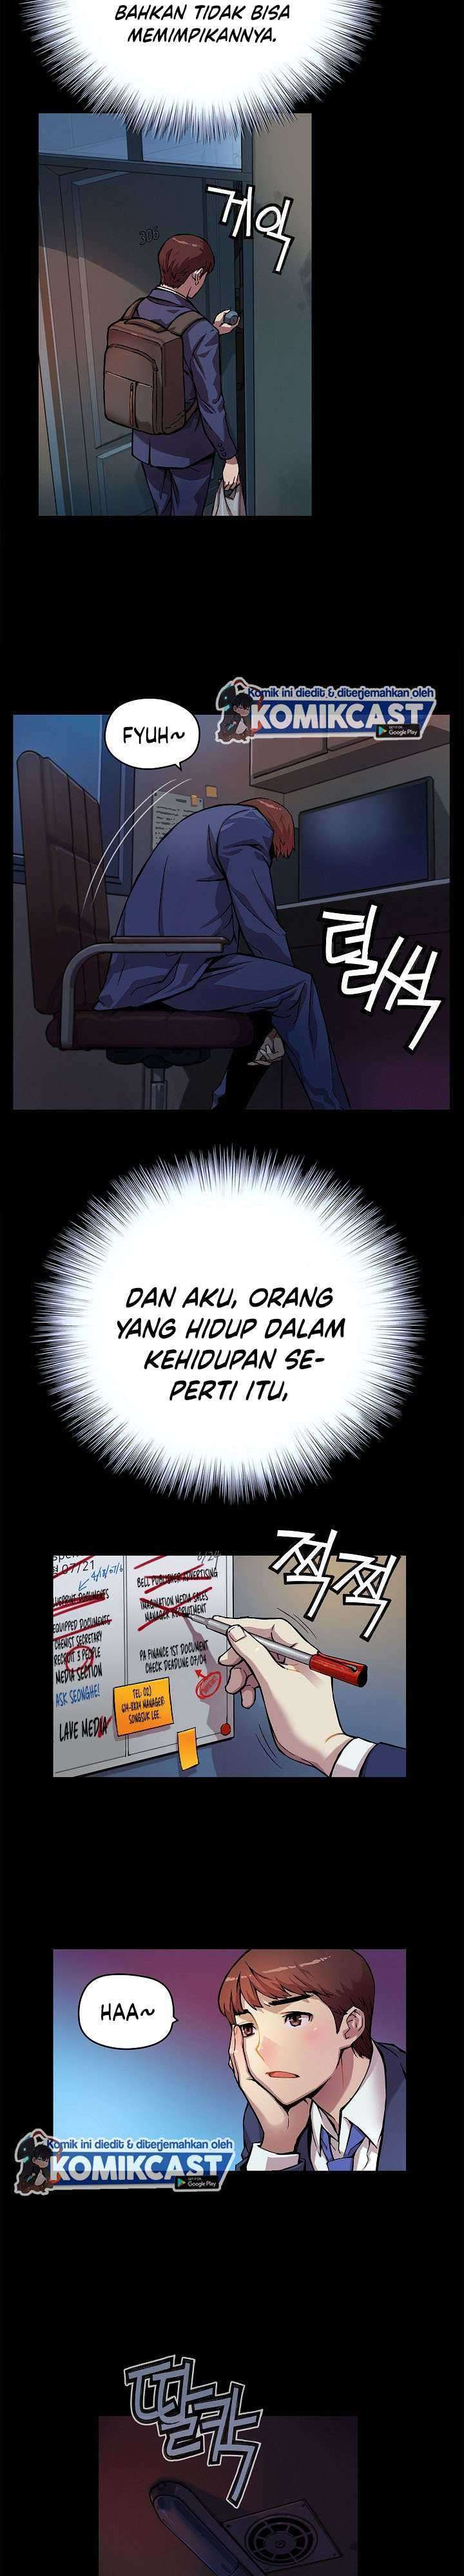 I Shall Live As a Prince Chapter 01 Bahasa Indonesia page 9